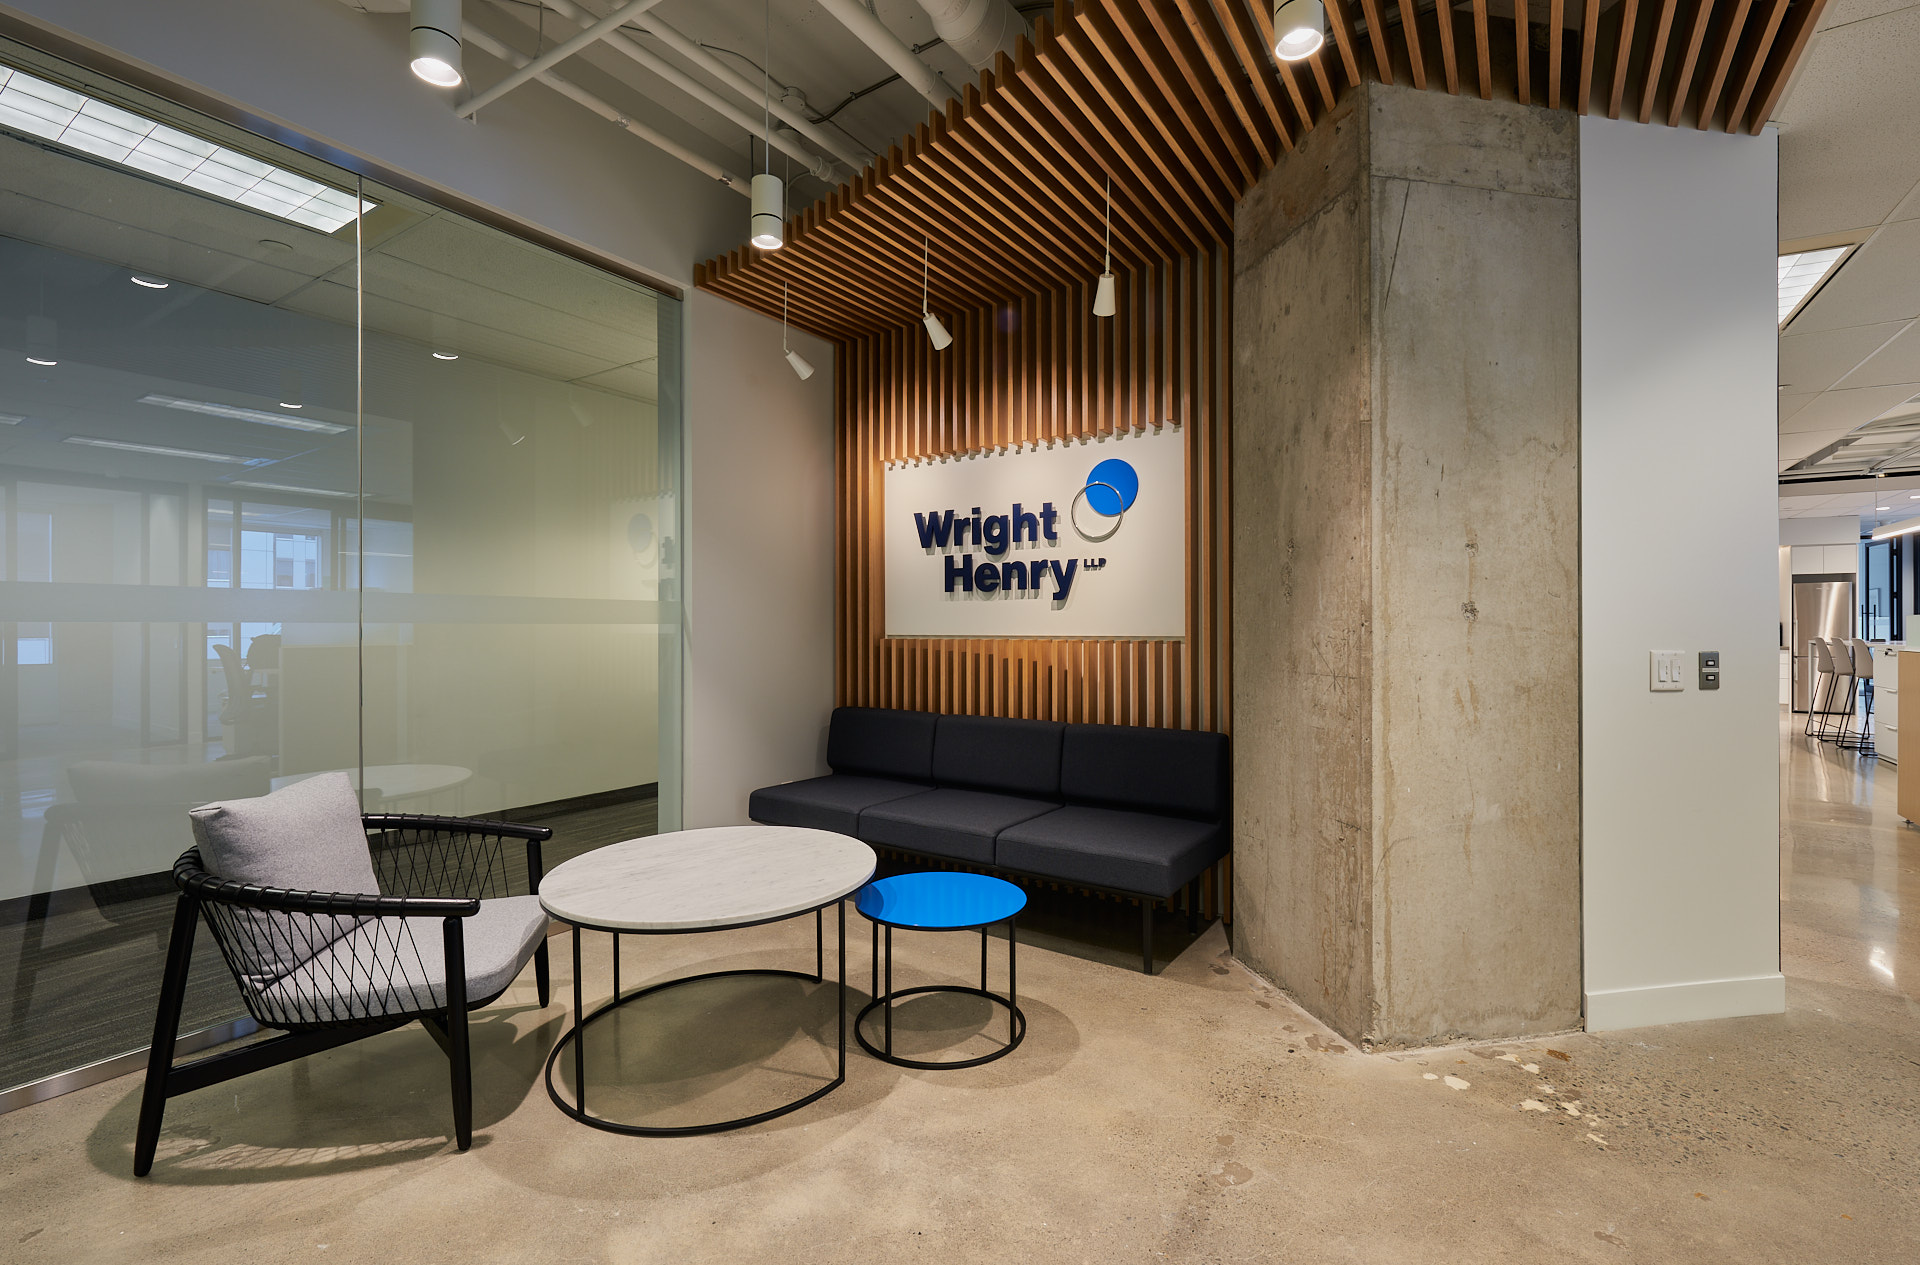 Wright Henry LLP